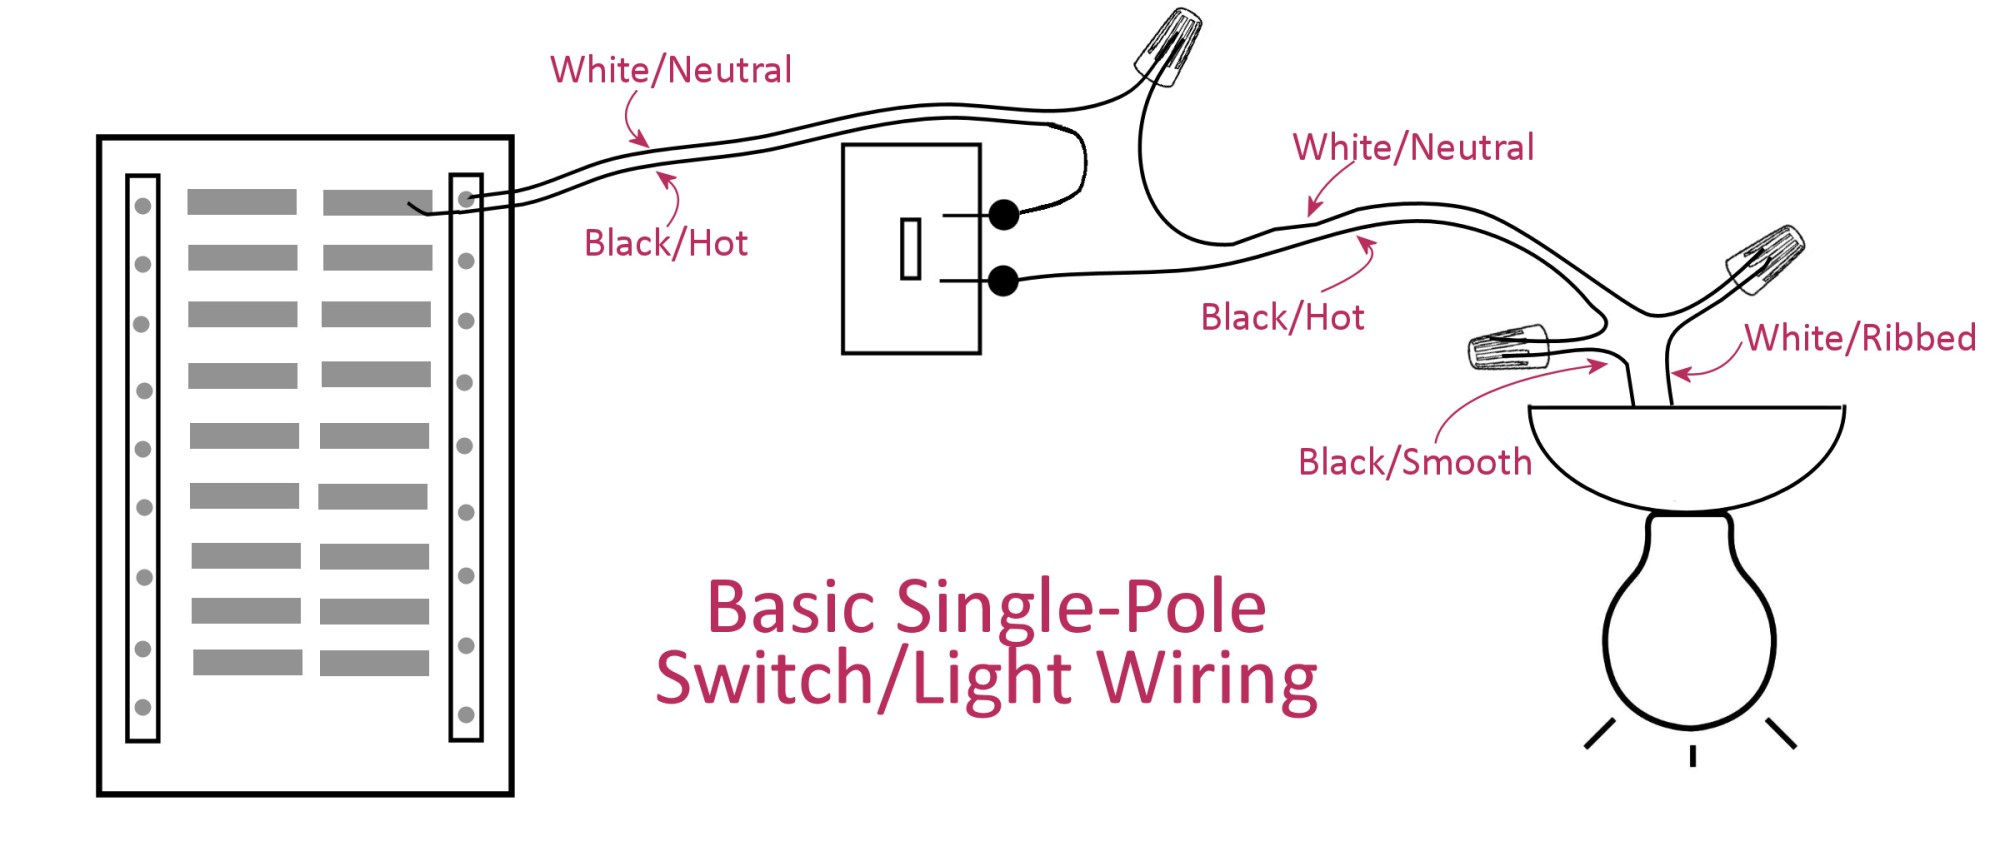 hight resolution of electrical basics wiring a basic single pole light switch wire diagram for single pole light switch single pole light switch diagram wire single pole light